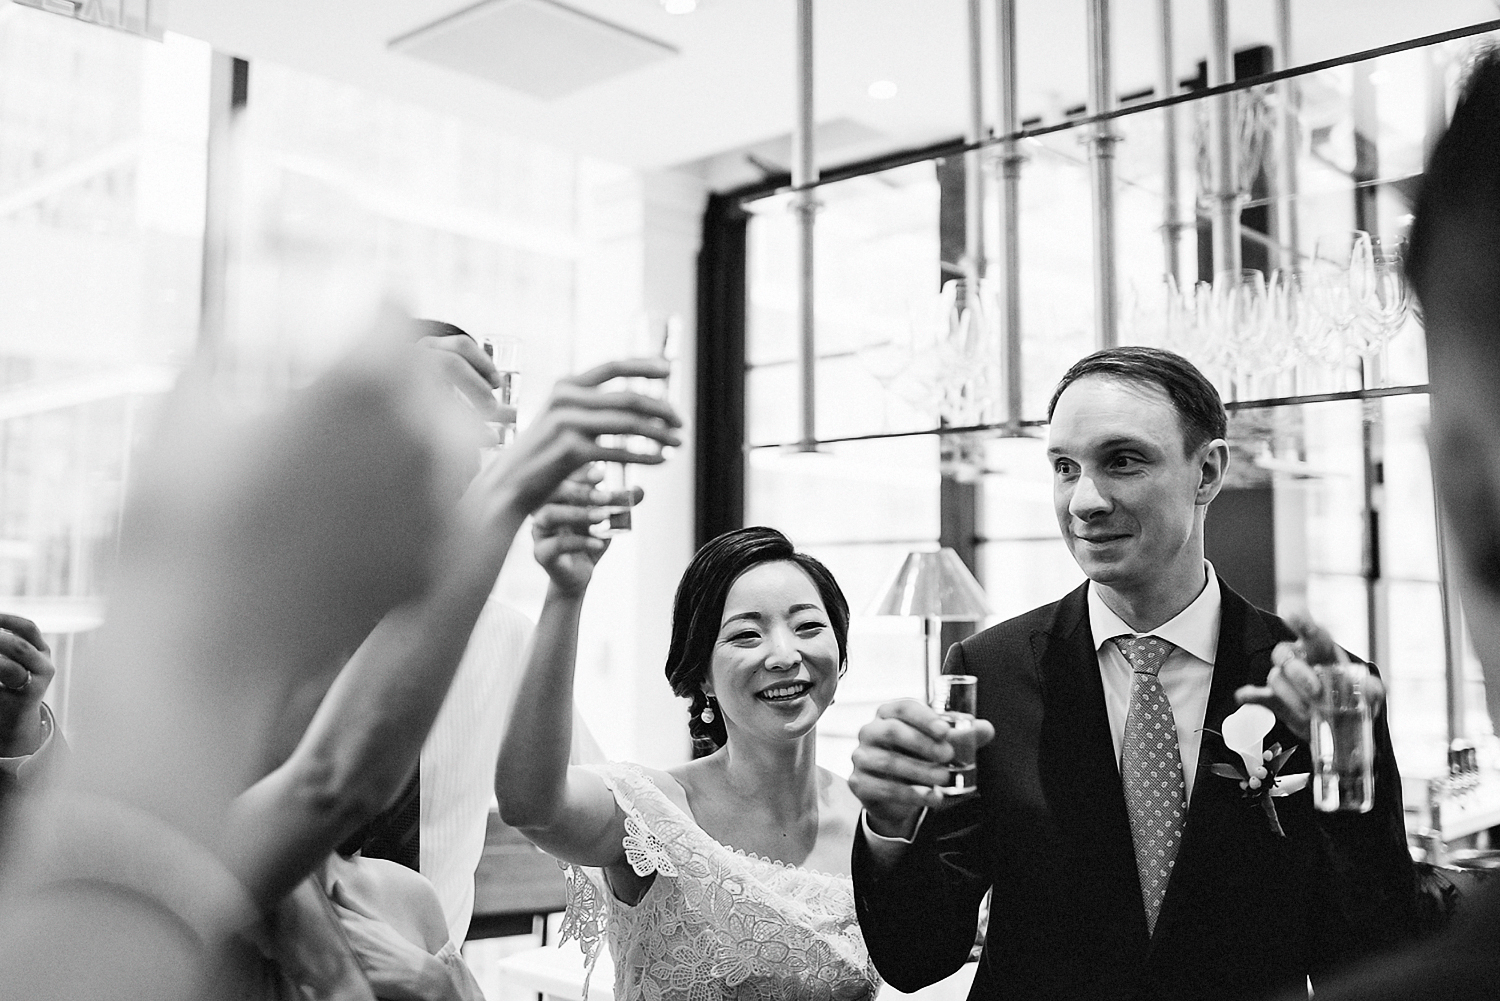 Best-Wedding-Photographers-Toronto_-Urban-City-Wedding-Photography-Downtown-Toronto-Photographer_Vintage-Bride-and-Groom-Details_The-Chase-Wedding-Venue_Candid-Photojournalistic-Documentary-Bride-Groom-Cheers.jpg